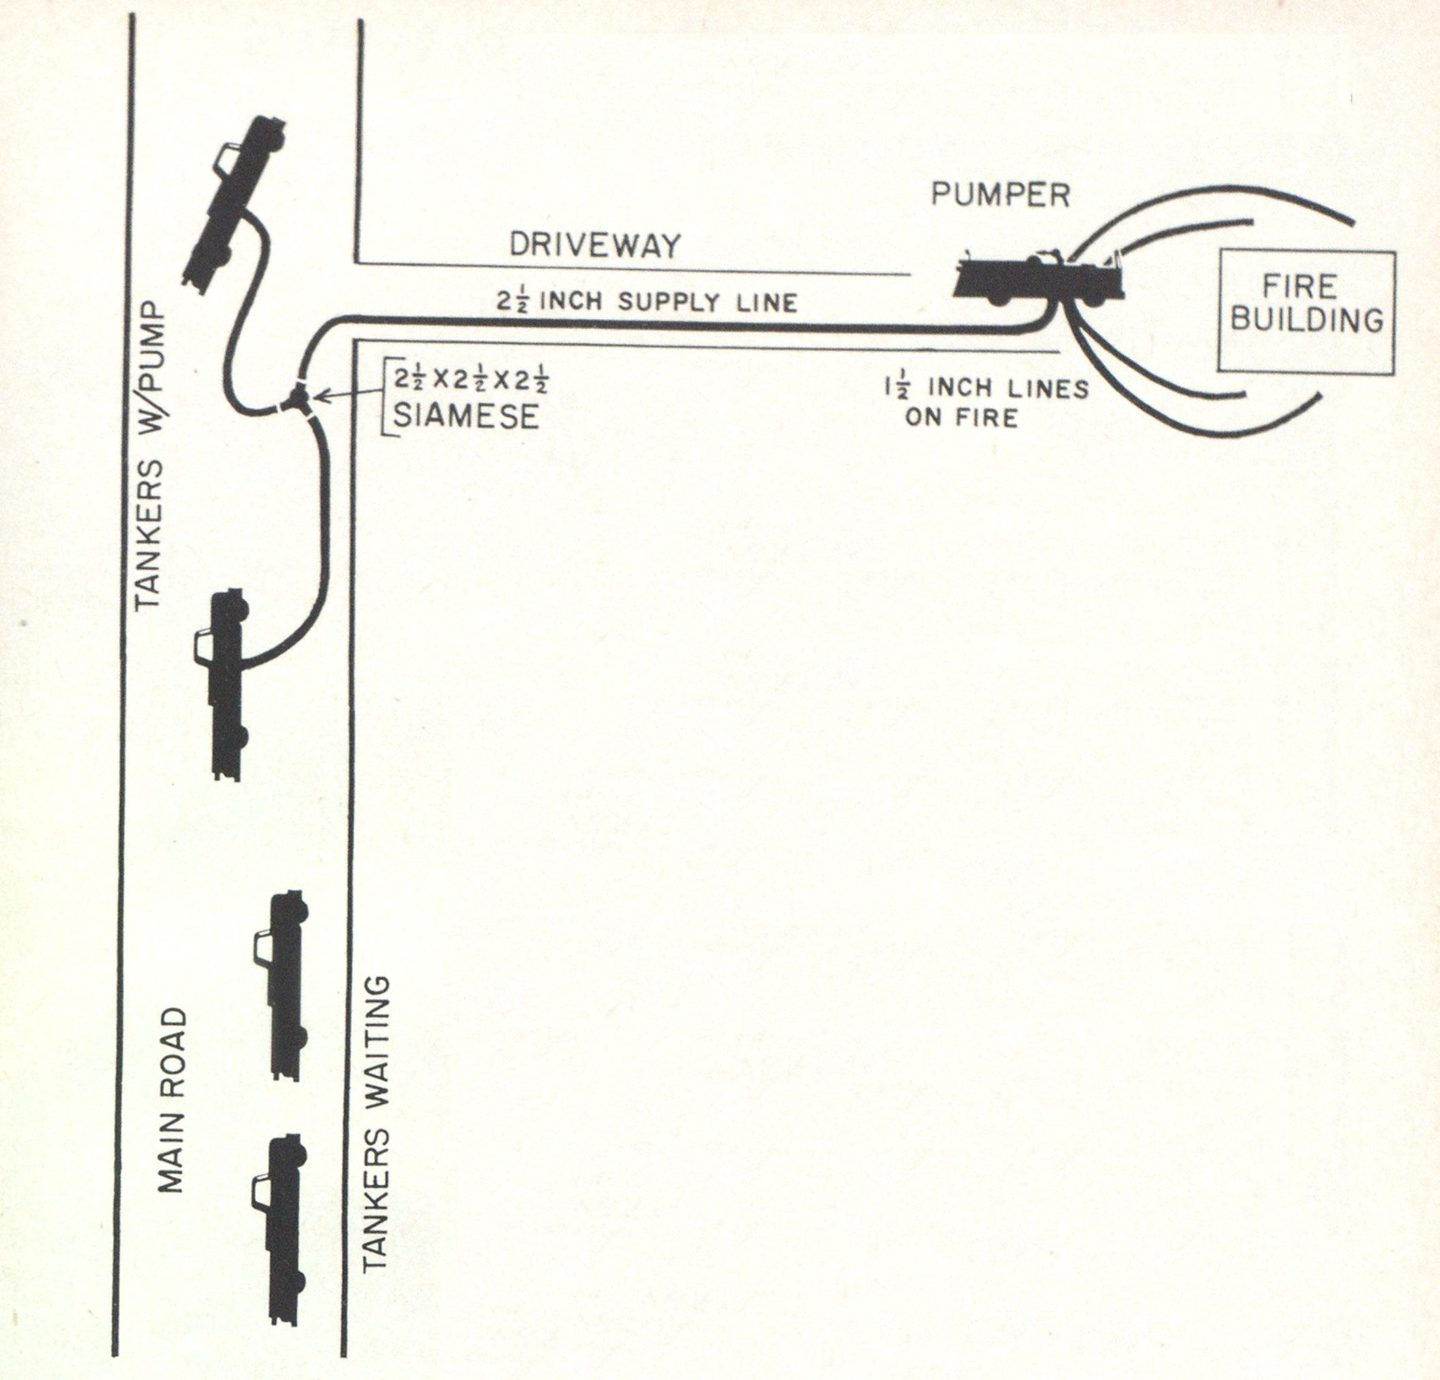 Employing Tanker Relays